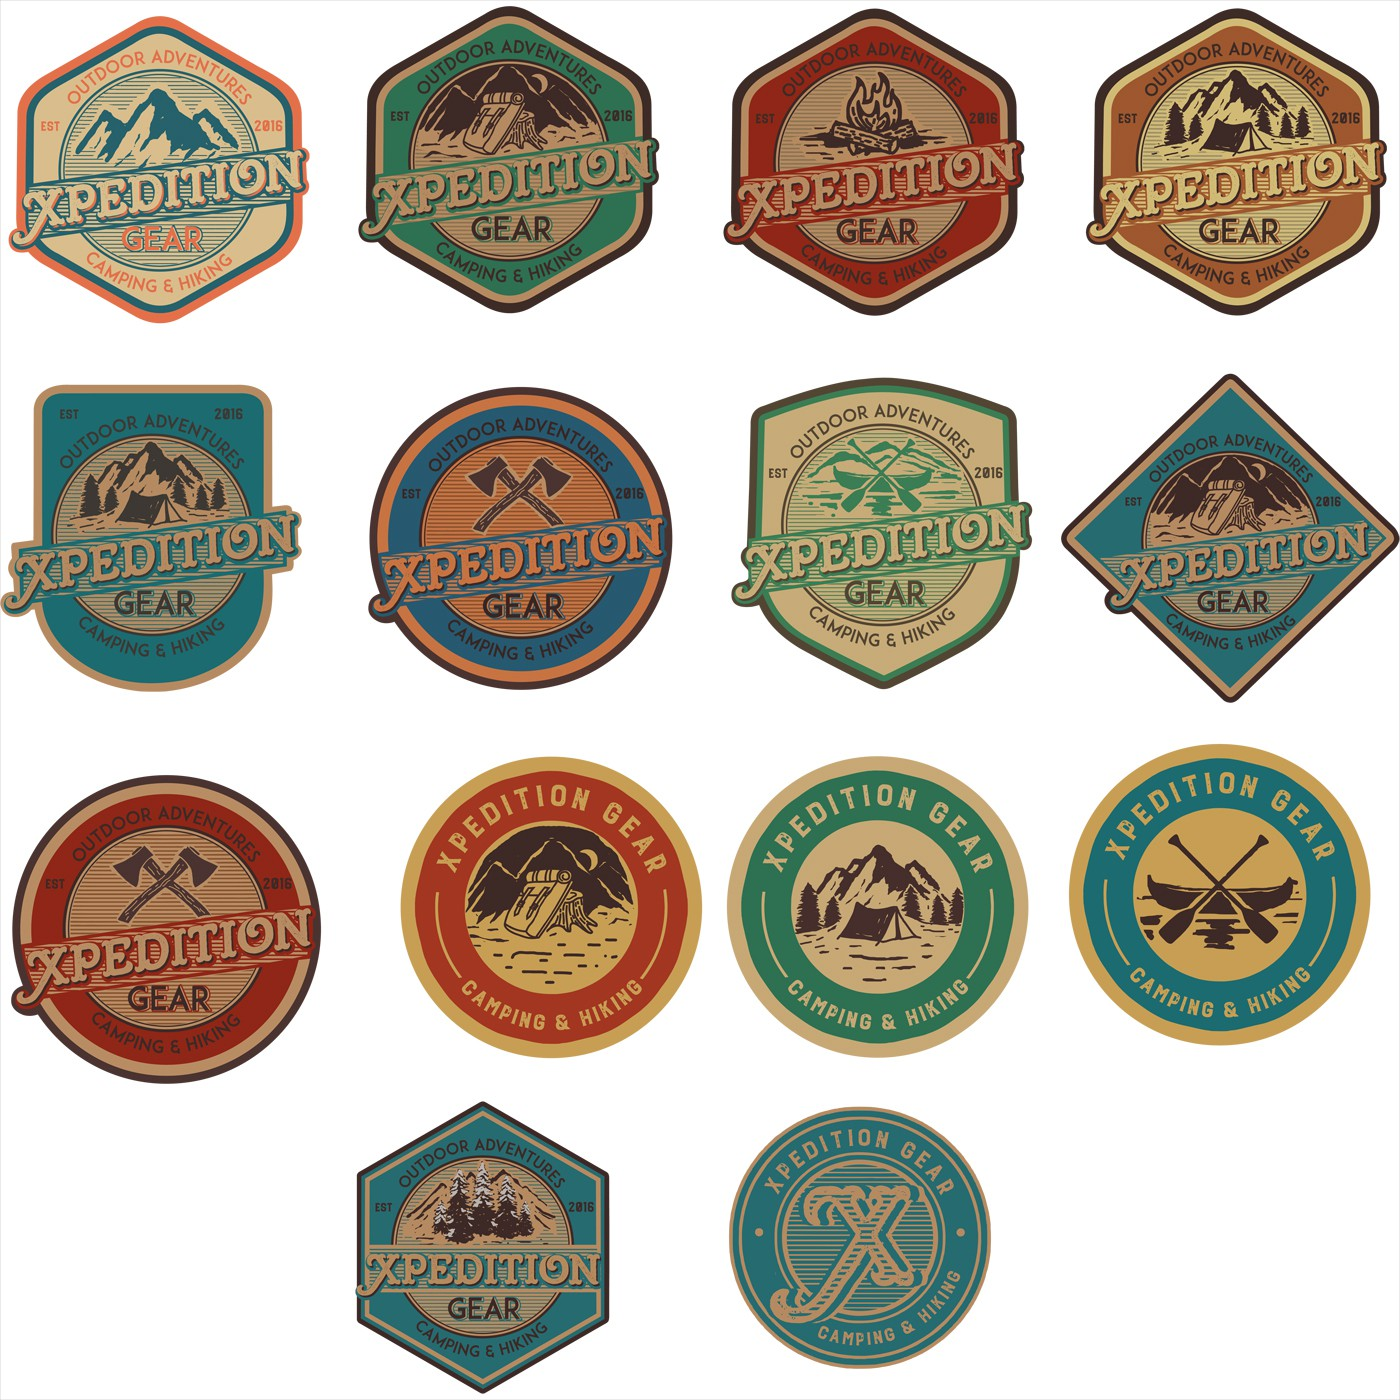 Logo enhancement for a premium vintage camping and hiking company